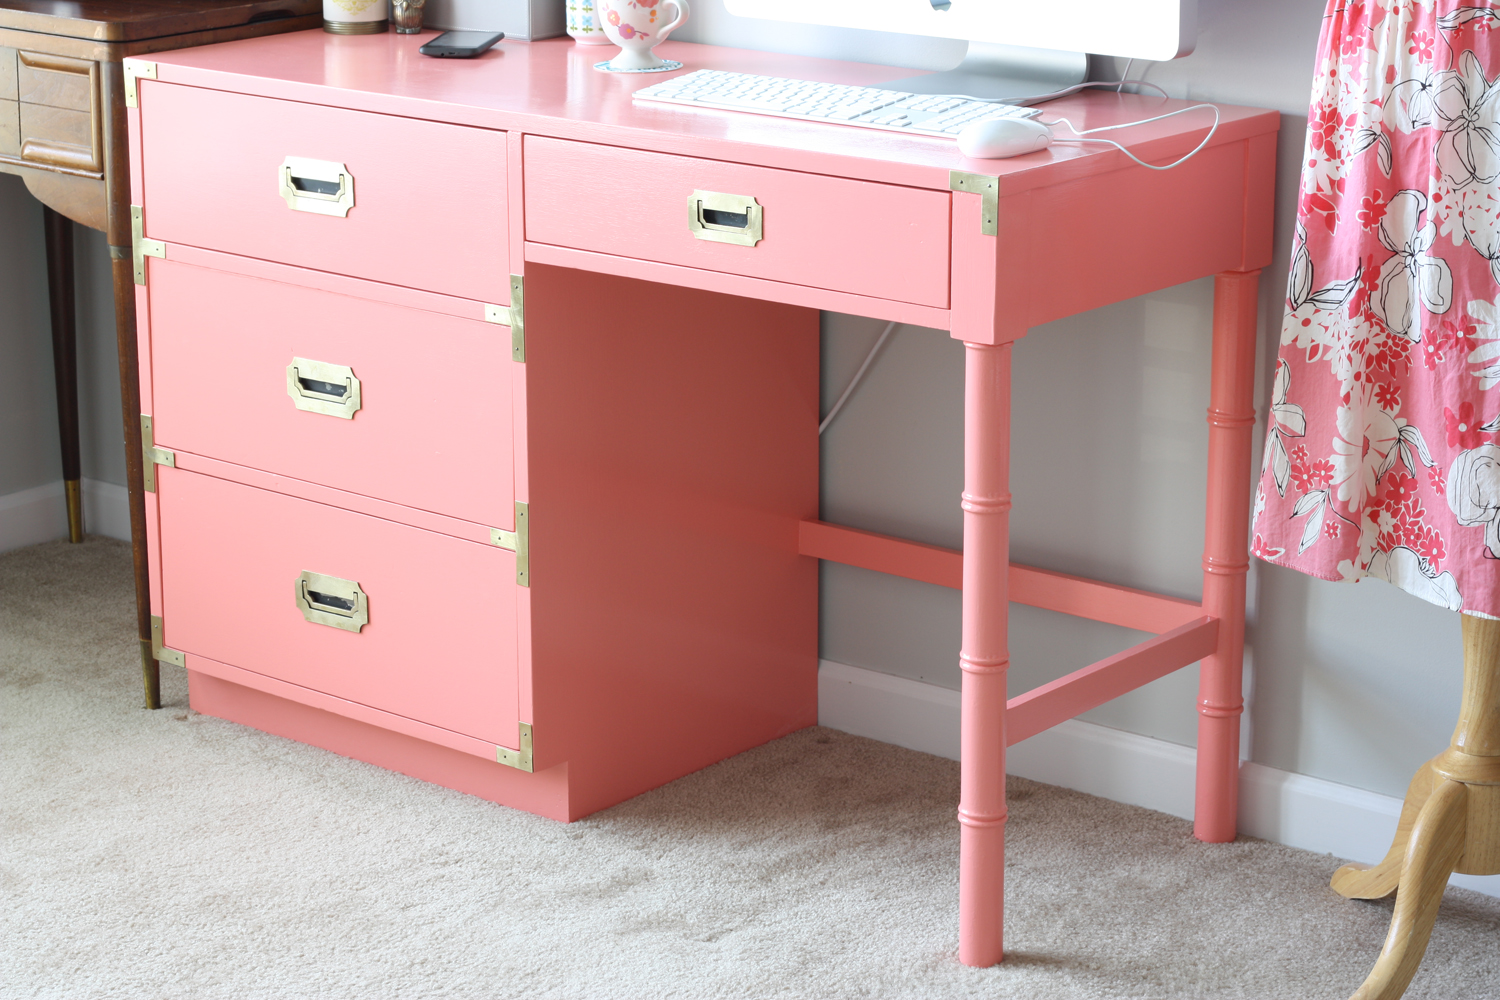 Tuesday, July 31, 2012 - That Winsome Girl: Vintage Campaign Desk Reveal